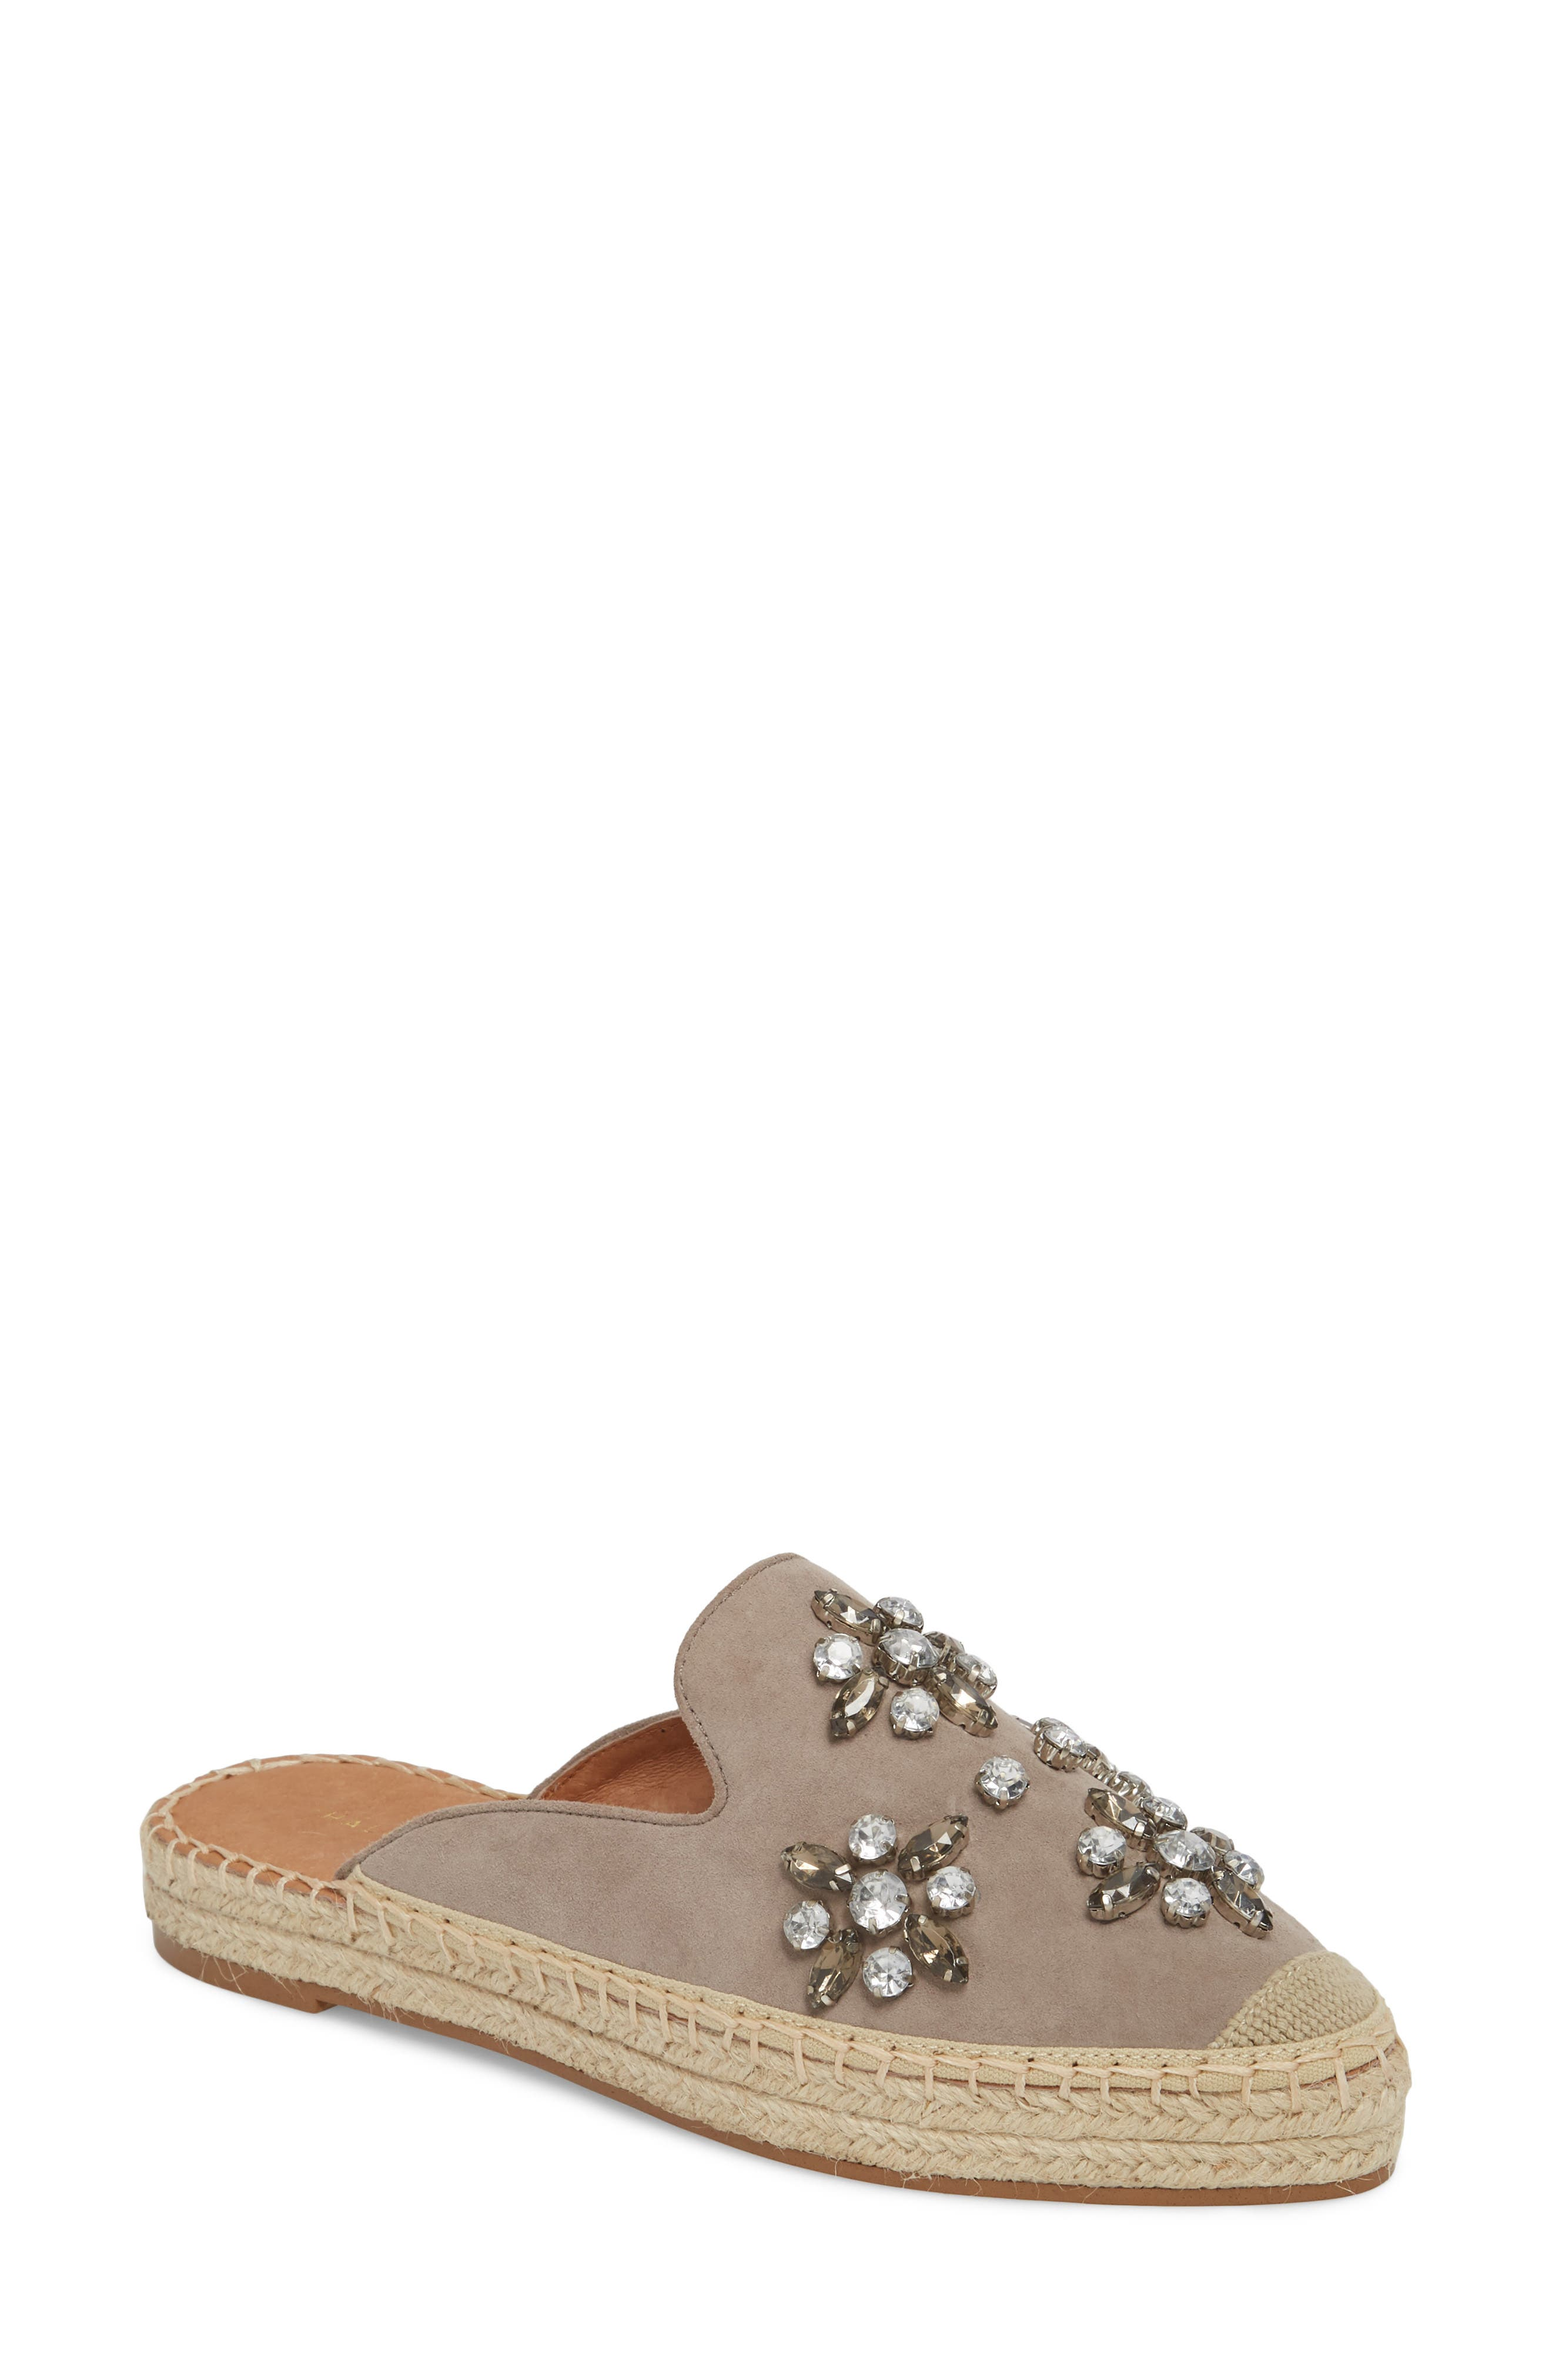 Blythe Embellished Espadrille Mule,                             Main thumbnail 1, color,                             Stone Suede